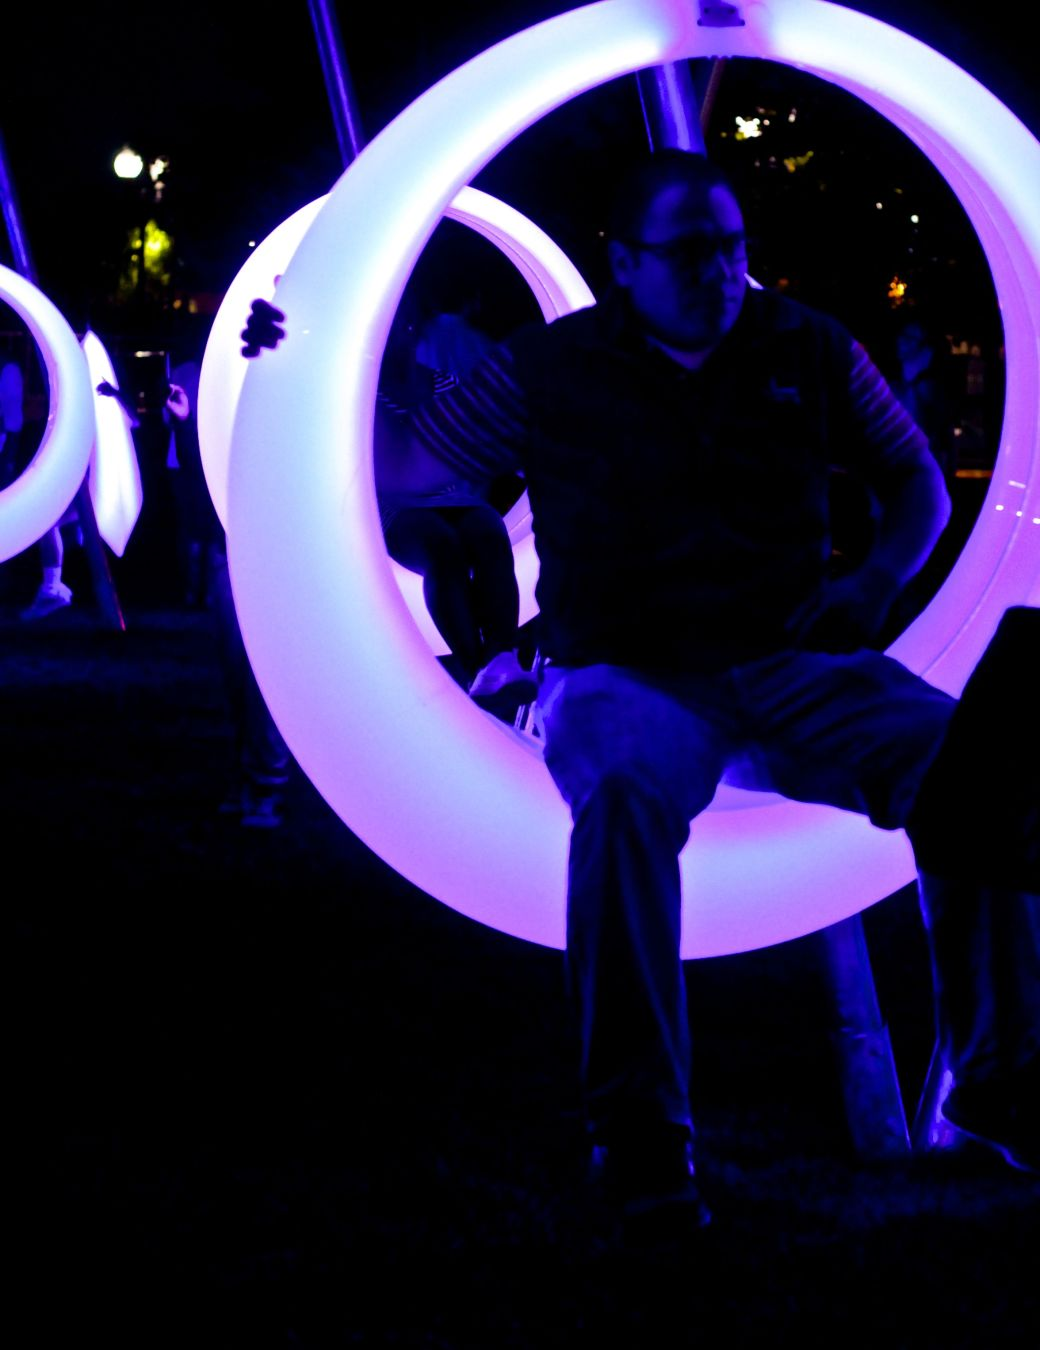 boston seaport district lawn on D swing time lights 8